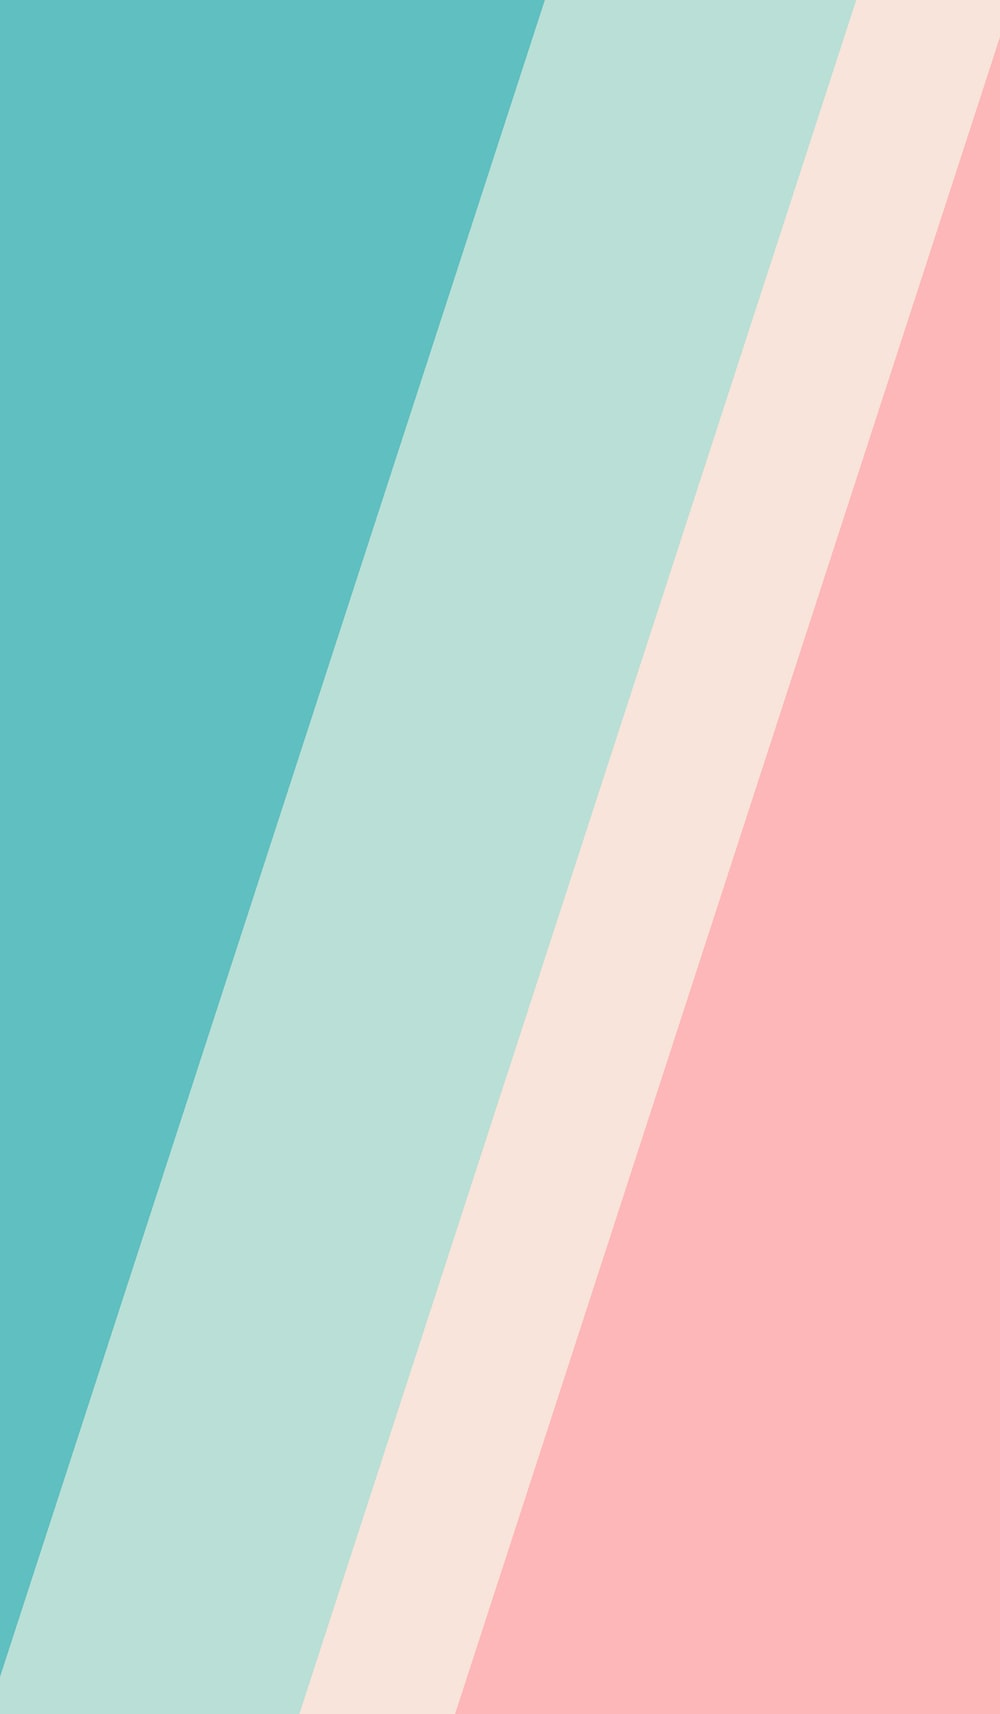 pink and teal striped textile